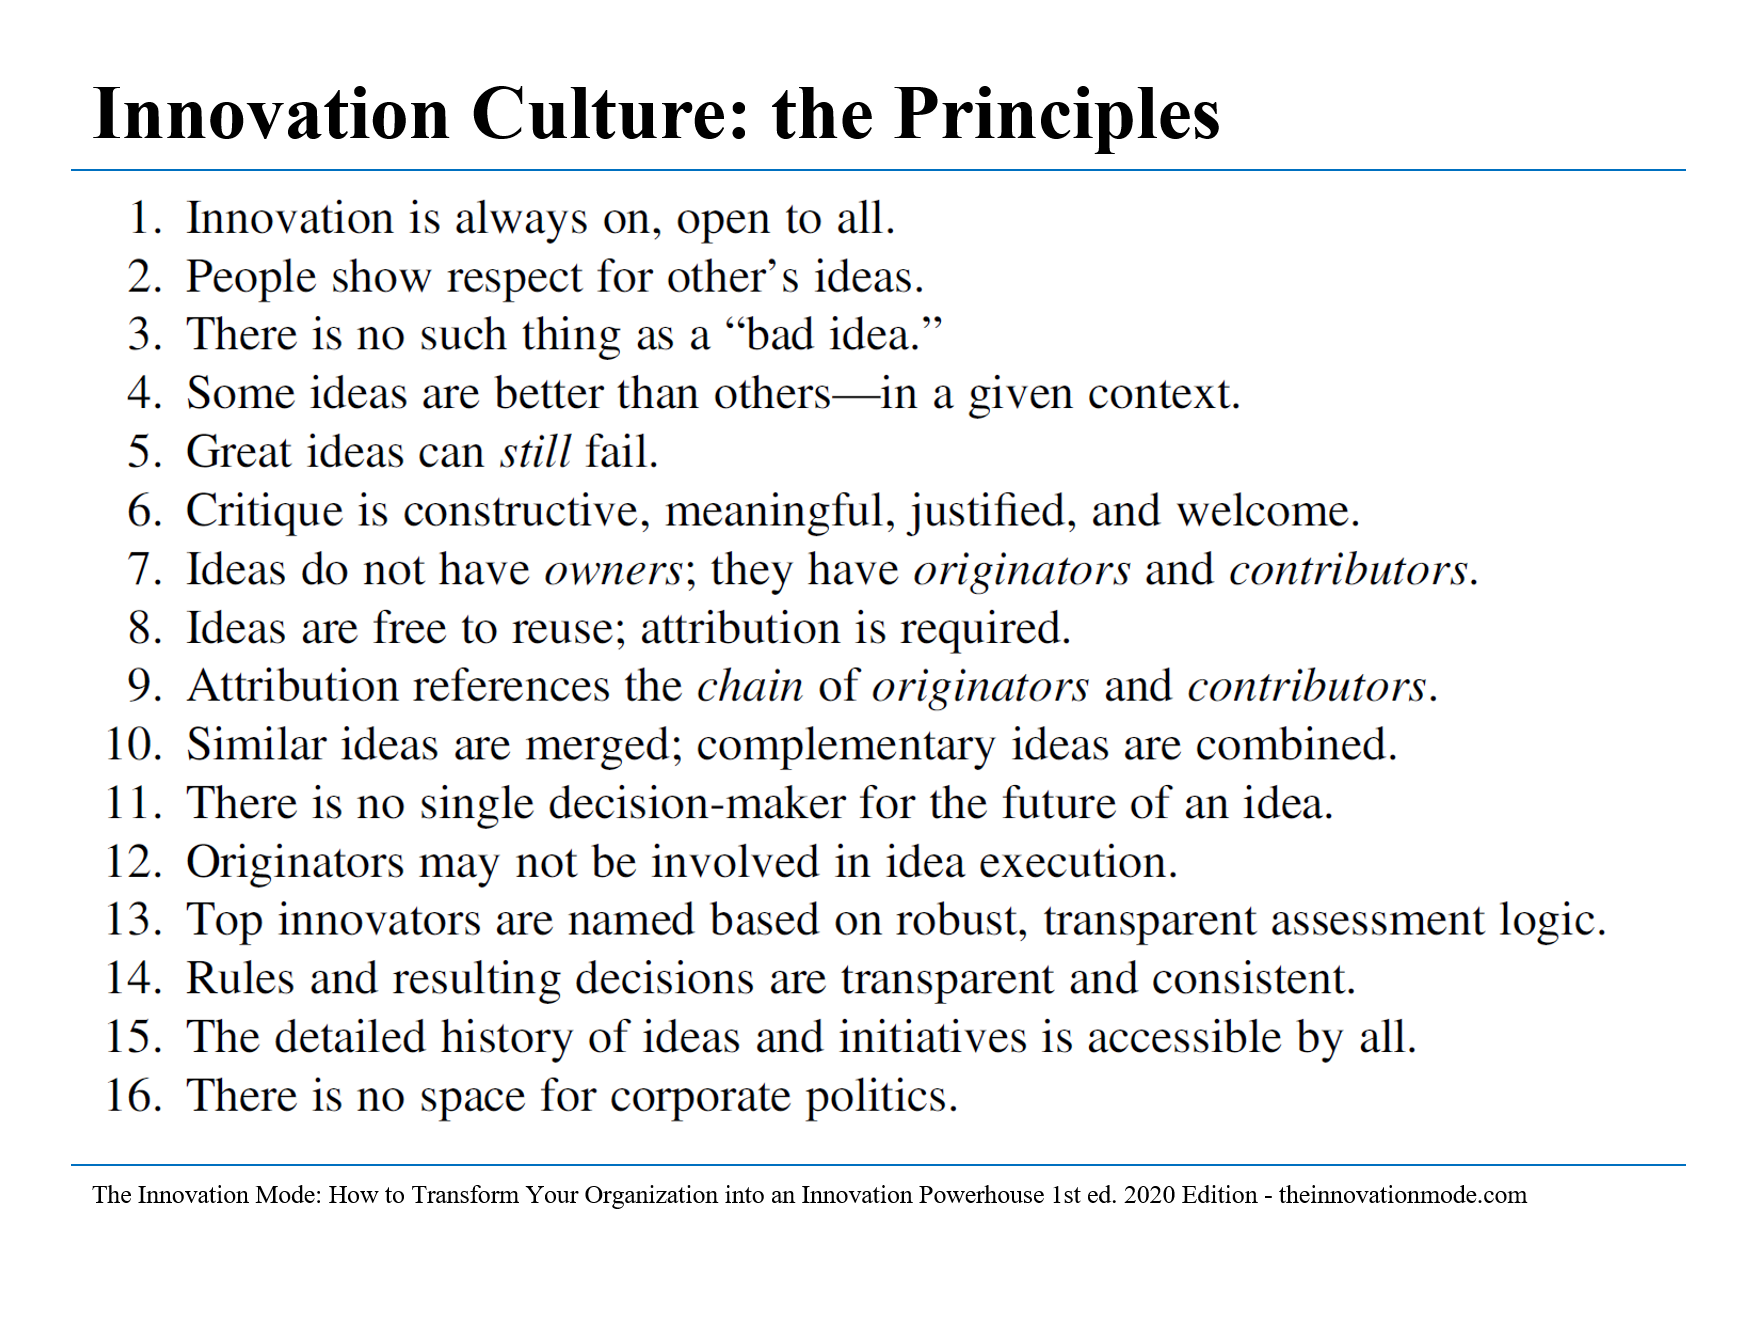 The principles of the Culture of Innovation. The Innovation Mode — Krasadakis